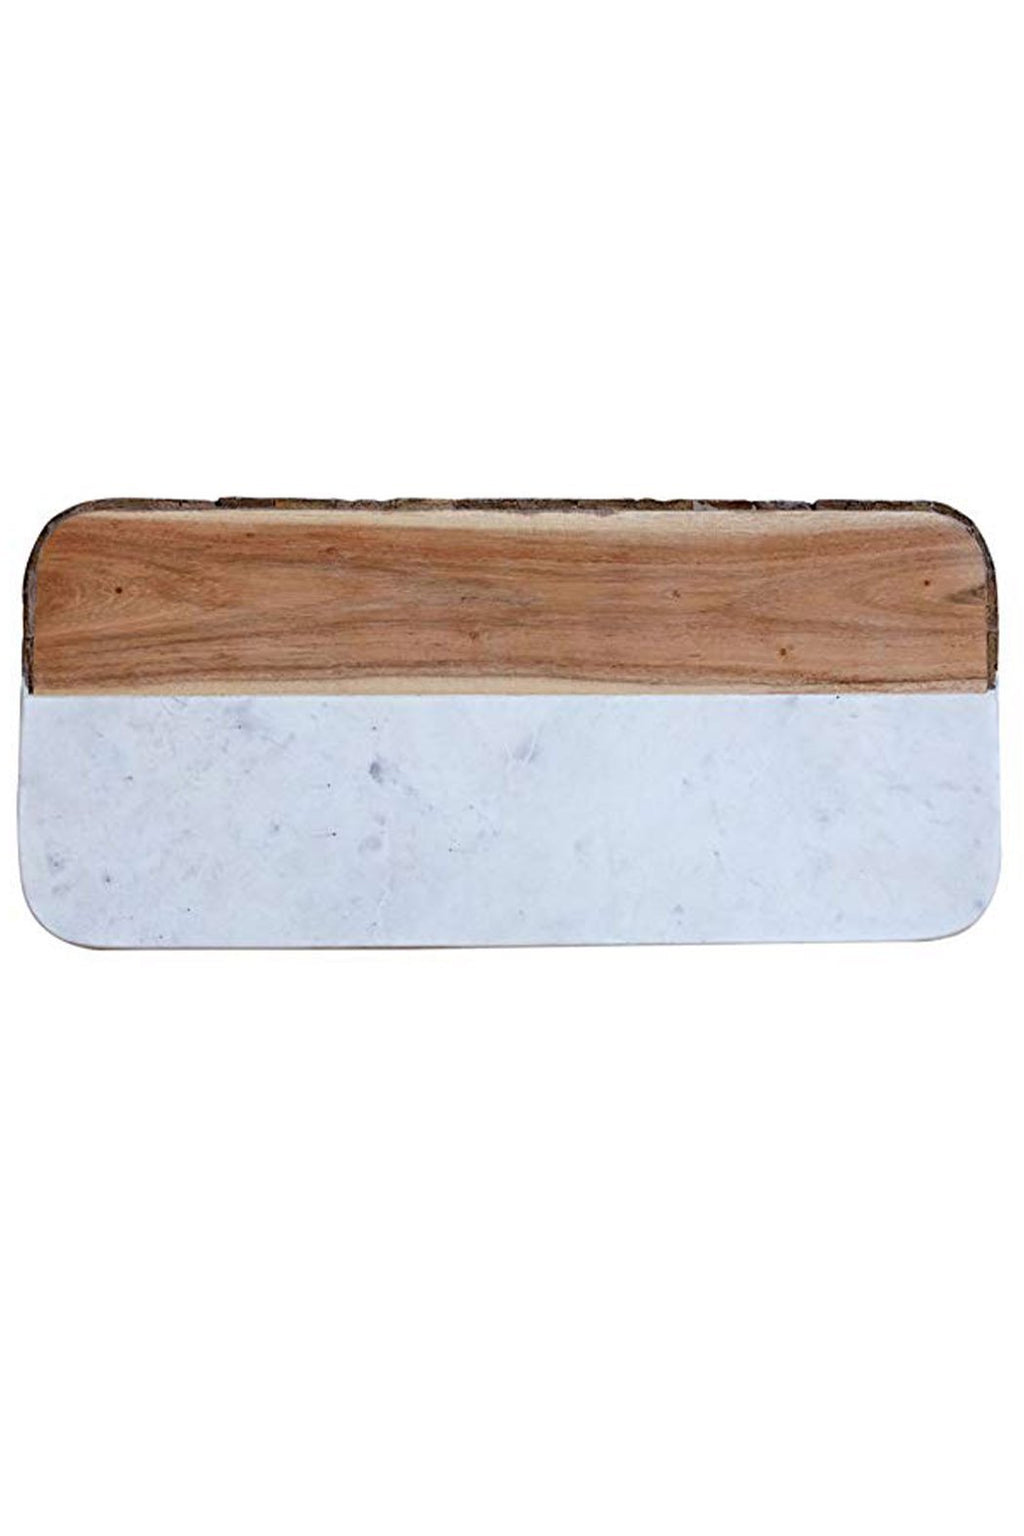 EcoVibe Style - White Marble & Mango Wood Cheese Board, KitchenwareCreative Co-op White Marble + Mango Wood Live Edge Board